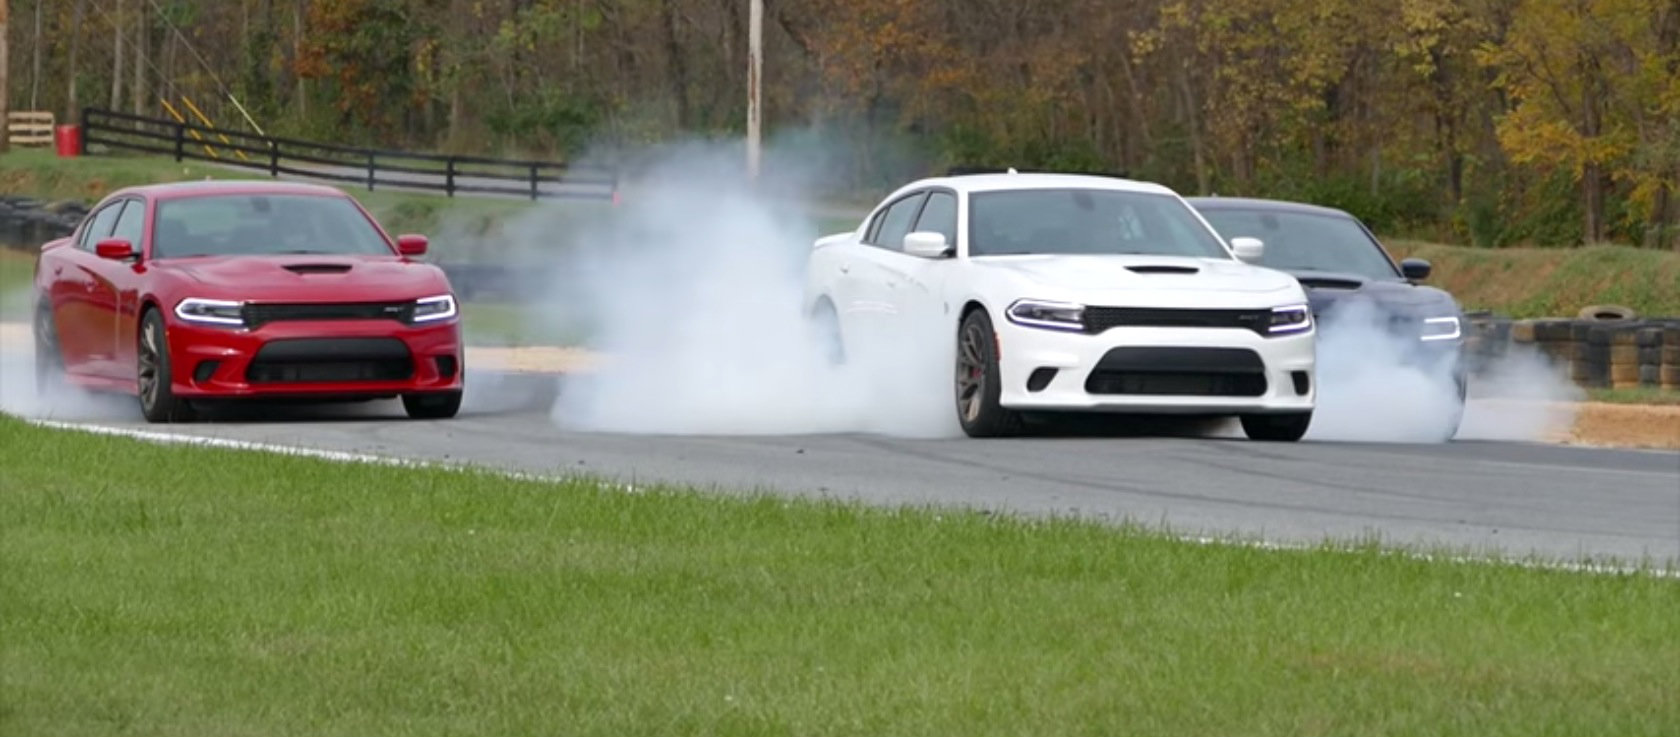 Ultimate Burnout Dodge Charger Srt Hellcat Celebrates